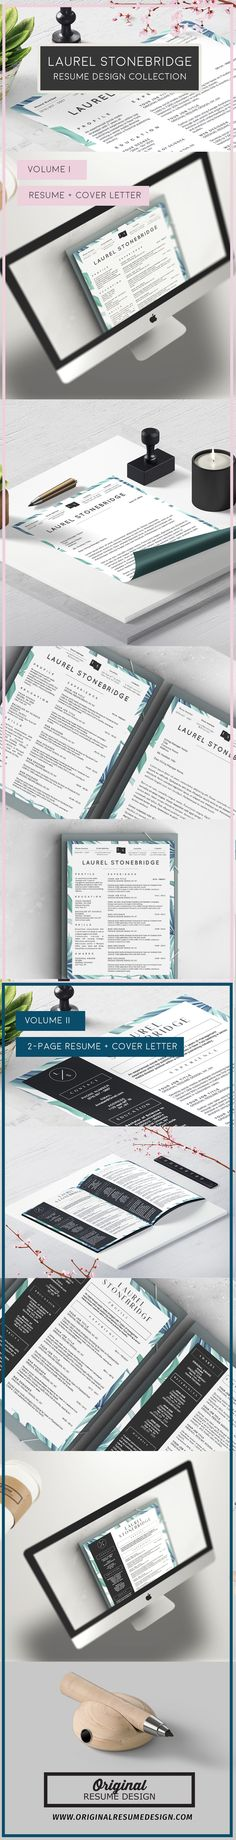 Beautiful Modern Resume Template for Microsoft Word - Laurel Stonebridge Volumes I and II